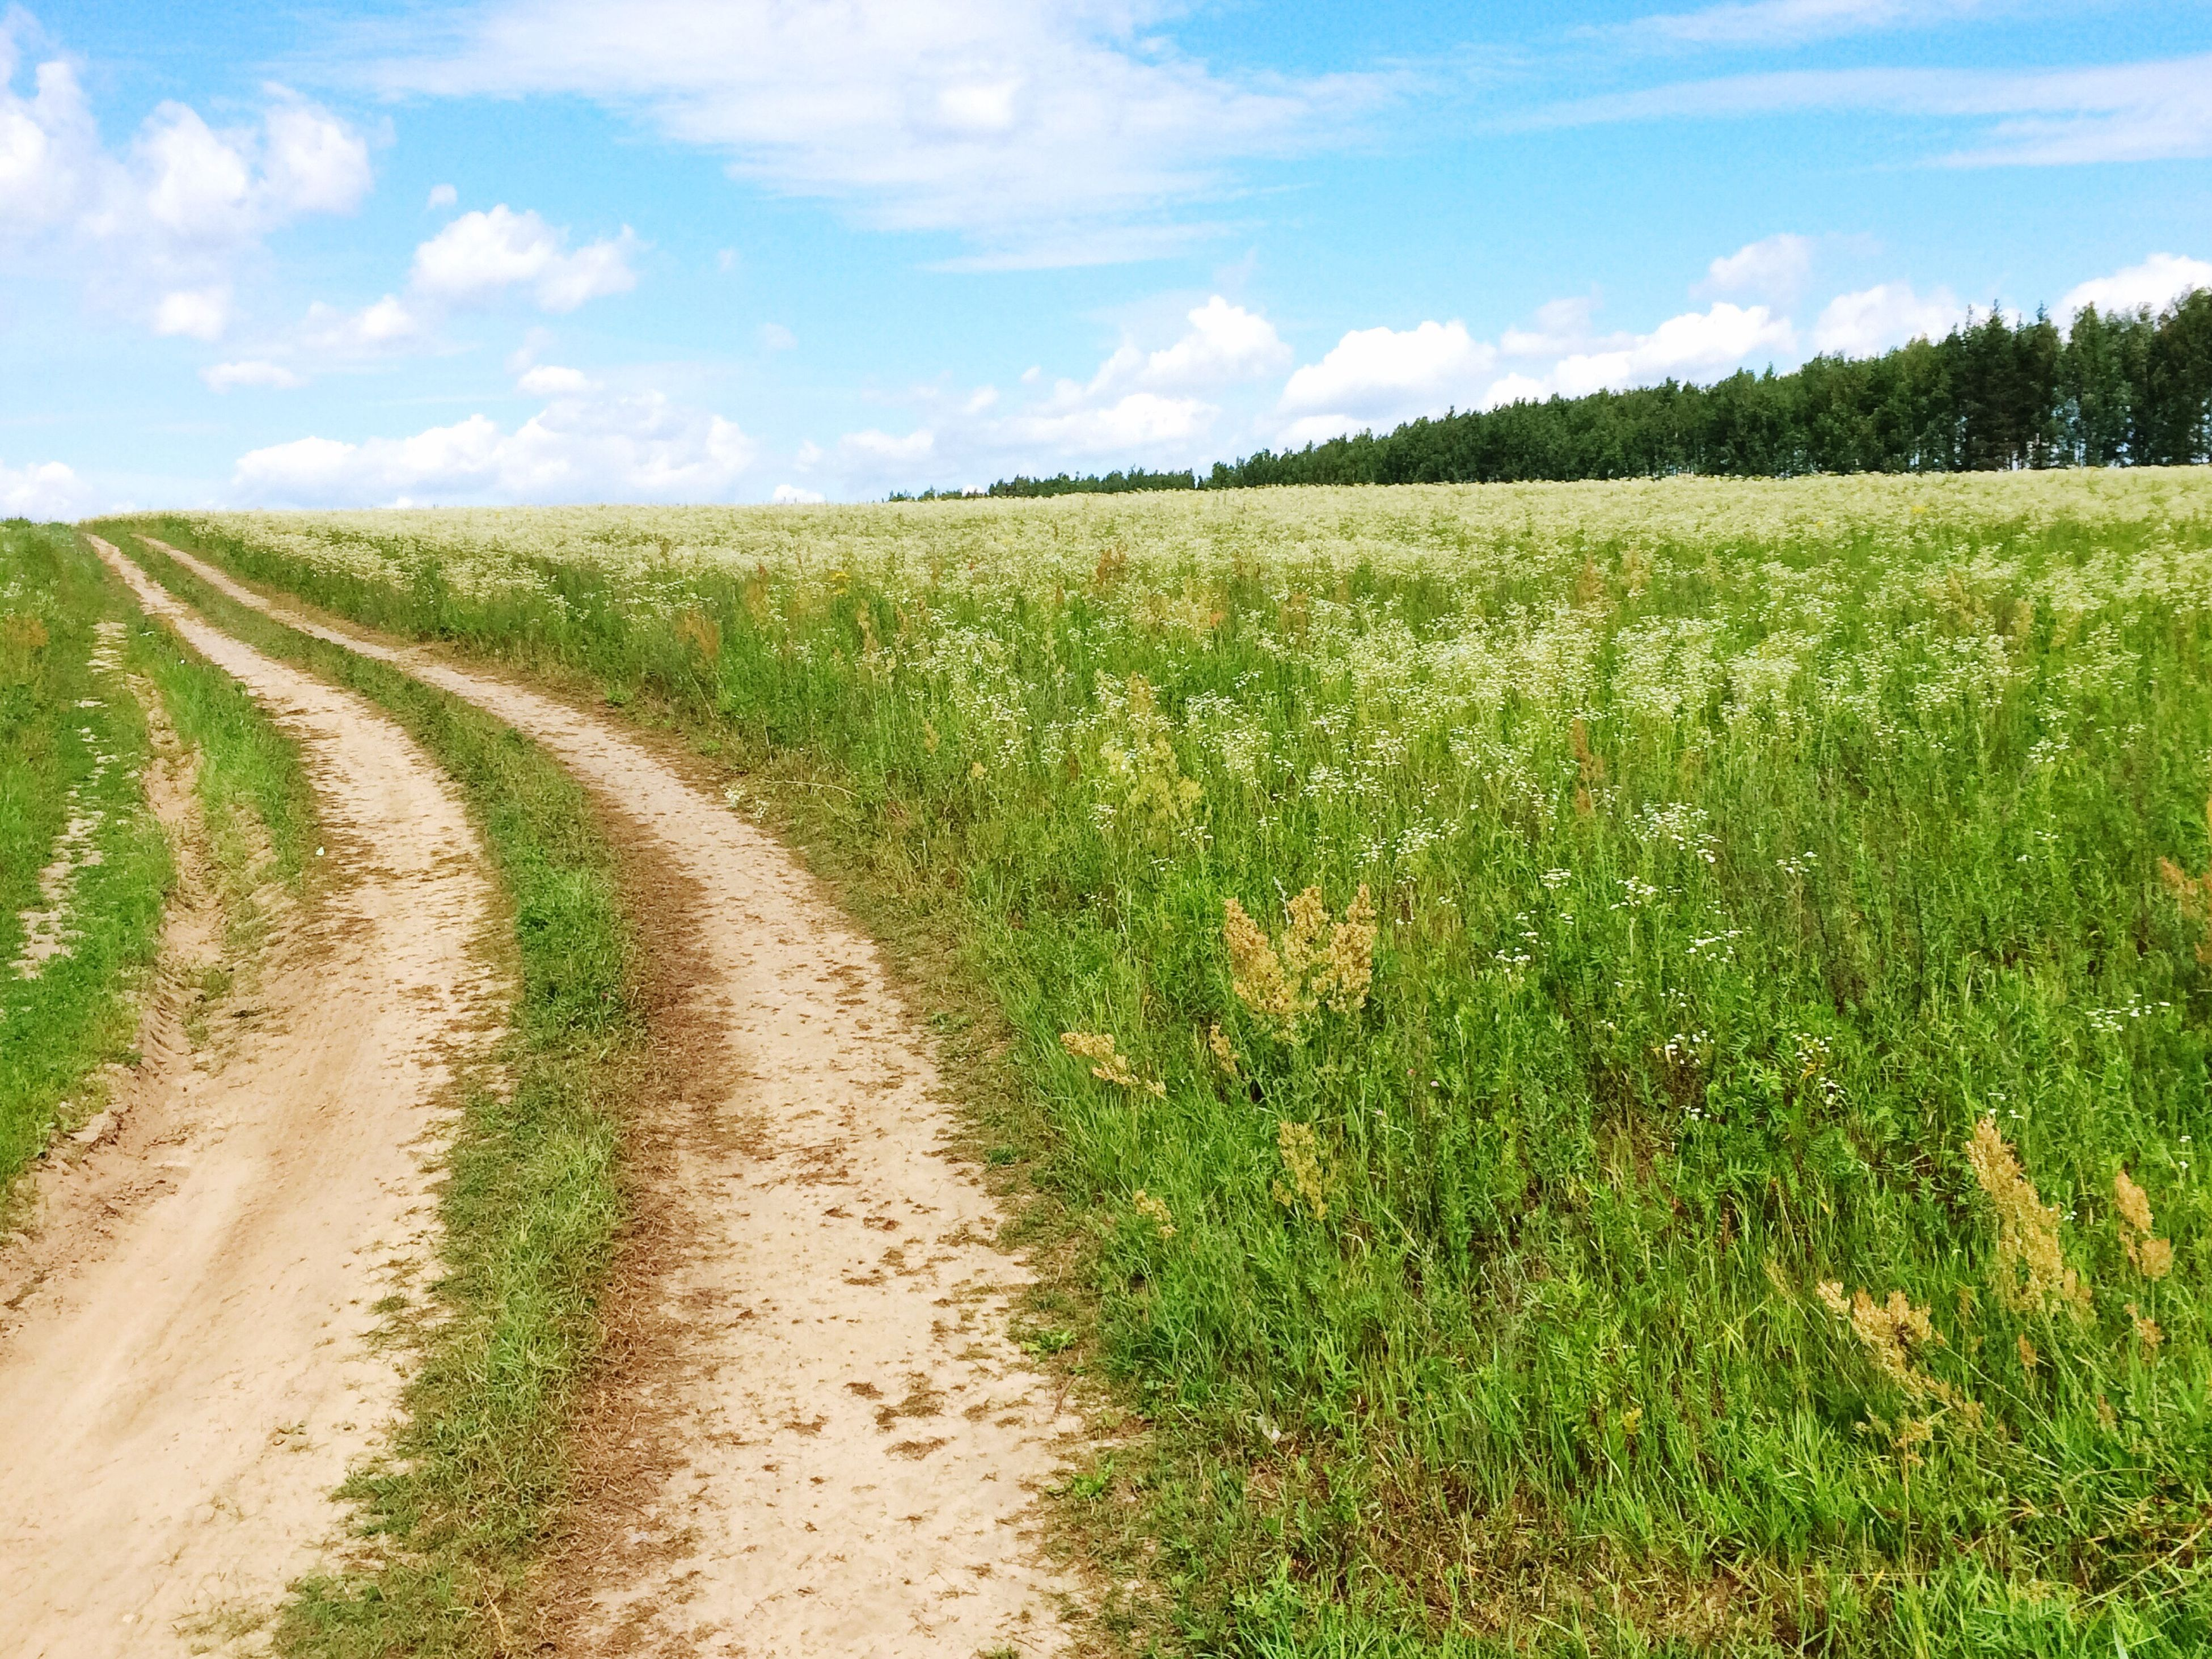 landscape, agriculture, field, rural scene, tranquil scene, tranquility, sky, growth, grass, the way forward, crop, nature, scenics, beauty in nature, dirt road, green color, cultivated land, plant, diminishing perspective, horizon over land, vanishing point, day, cloud, remote, cloud - sky, outdoors, non-urban scene, grassy, no people, idyllic, green